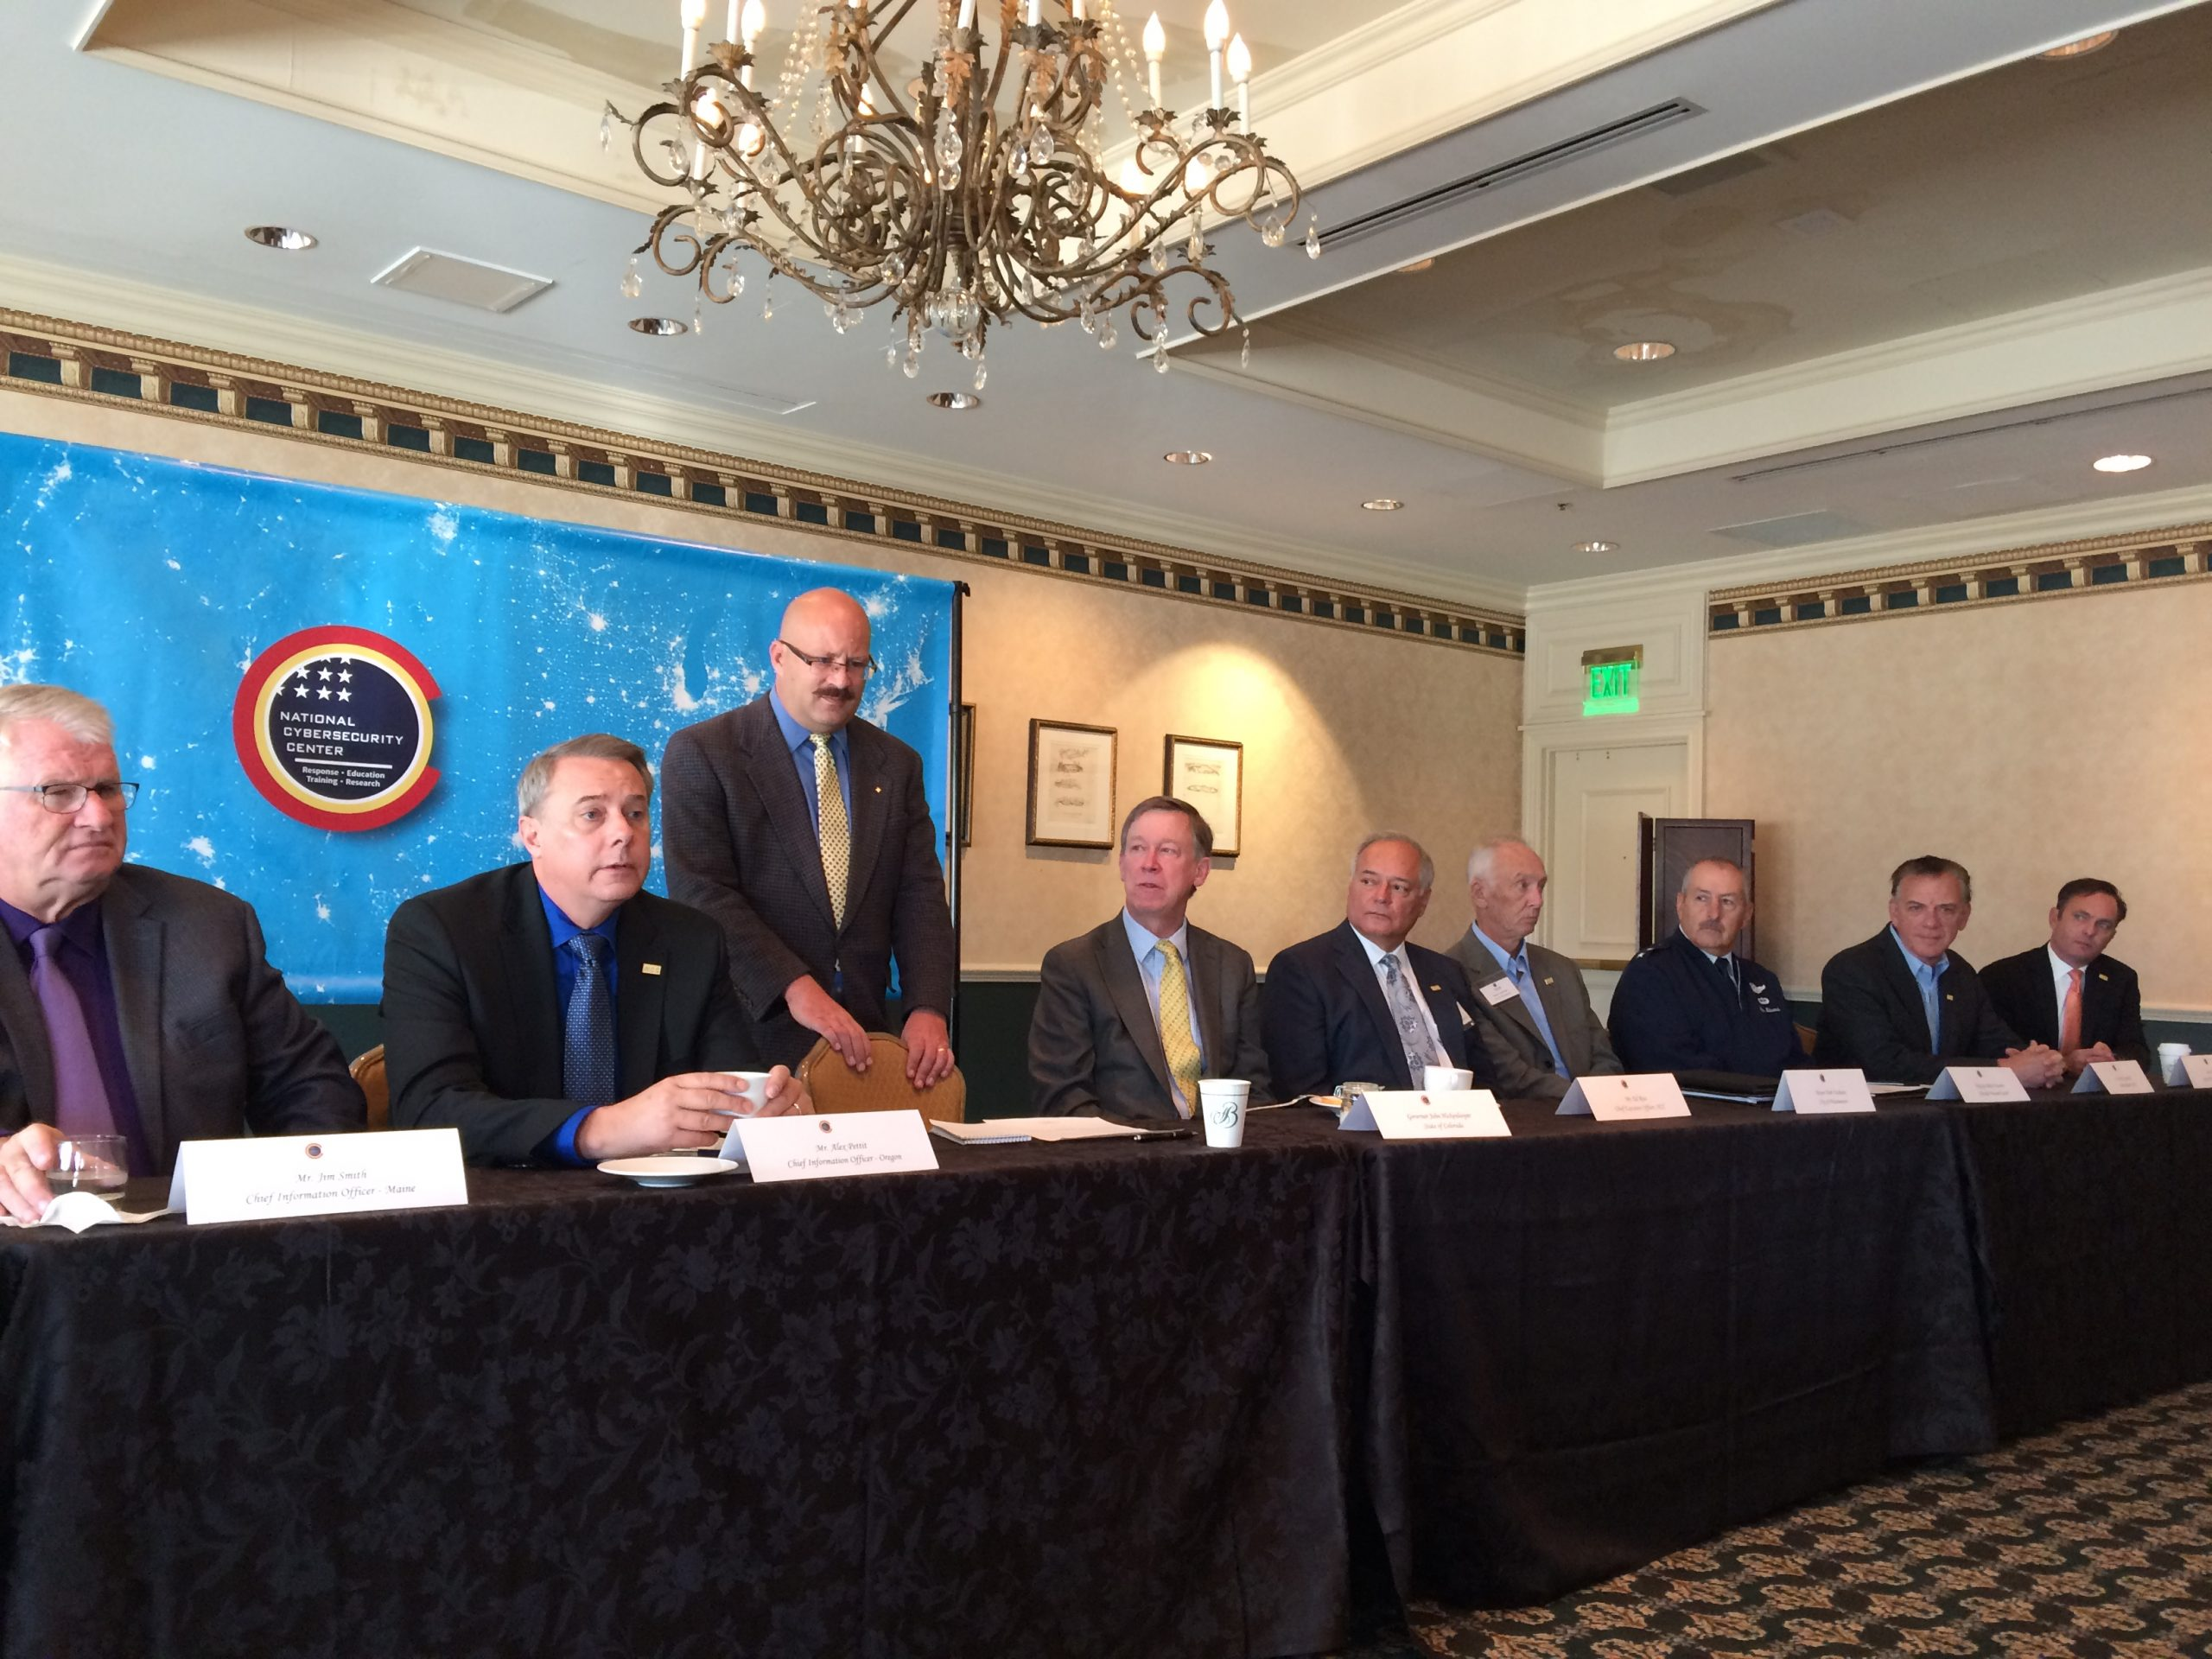 Cybersecurity conference leaders participated in a panel moderated by the Colorado Springs Gazette.